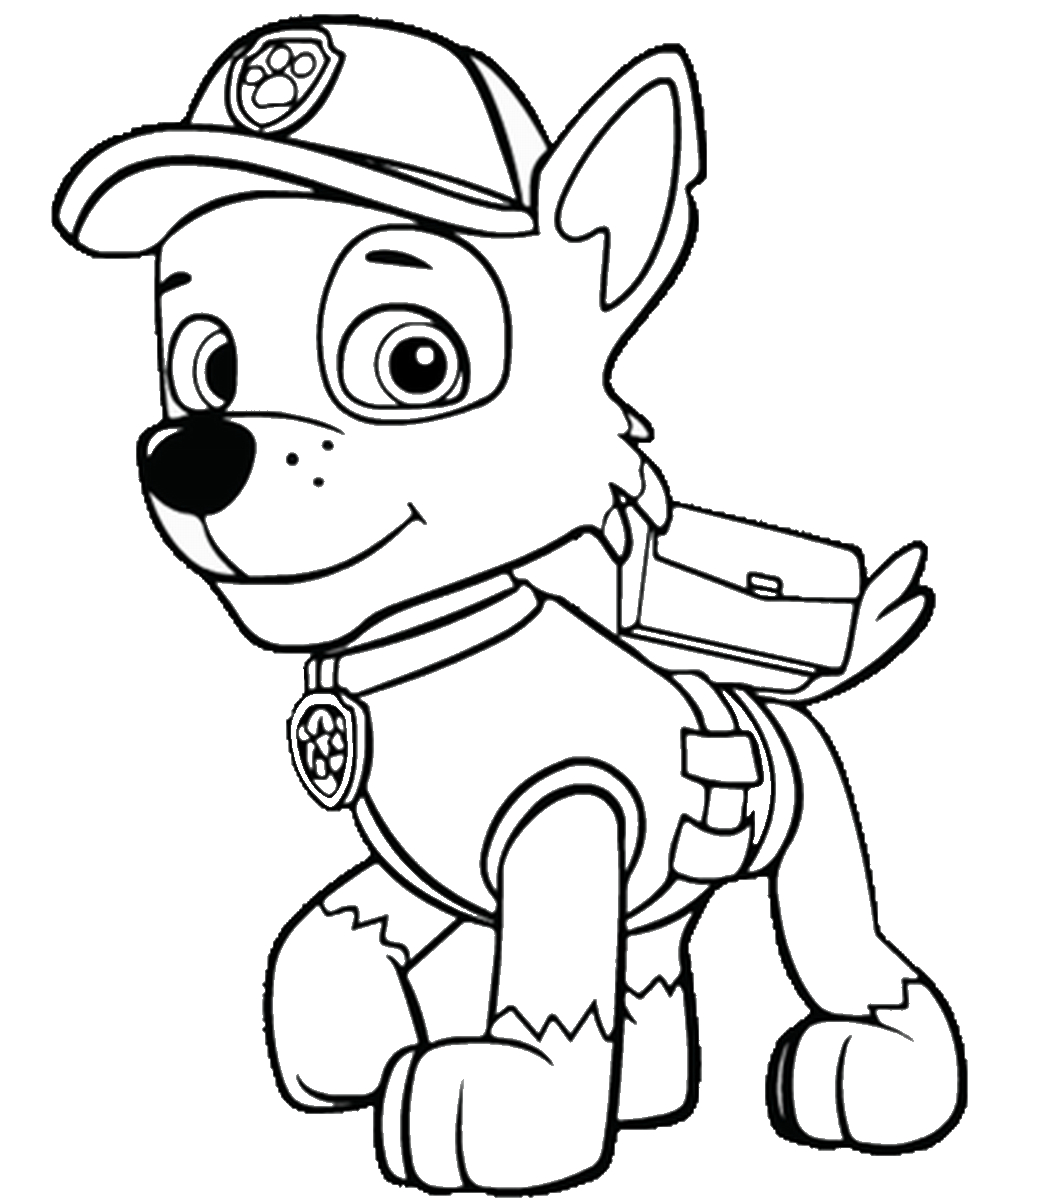 Paw Patrol Coloring Pages Printable 14a - Free For kids